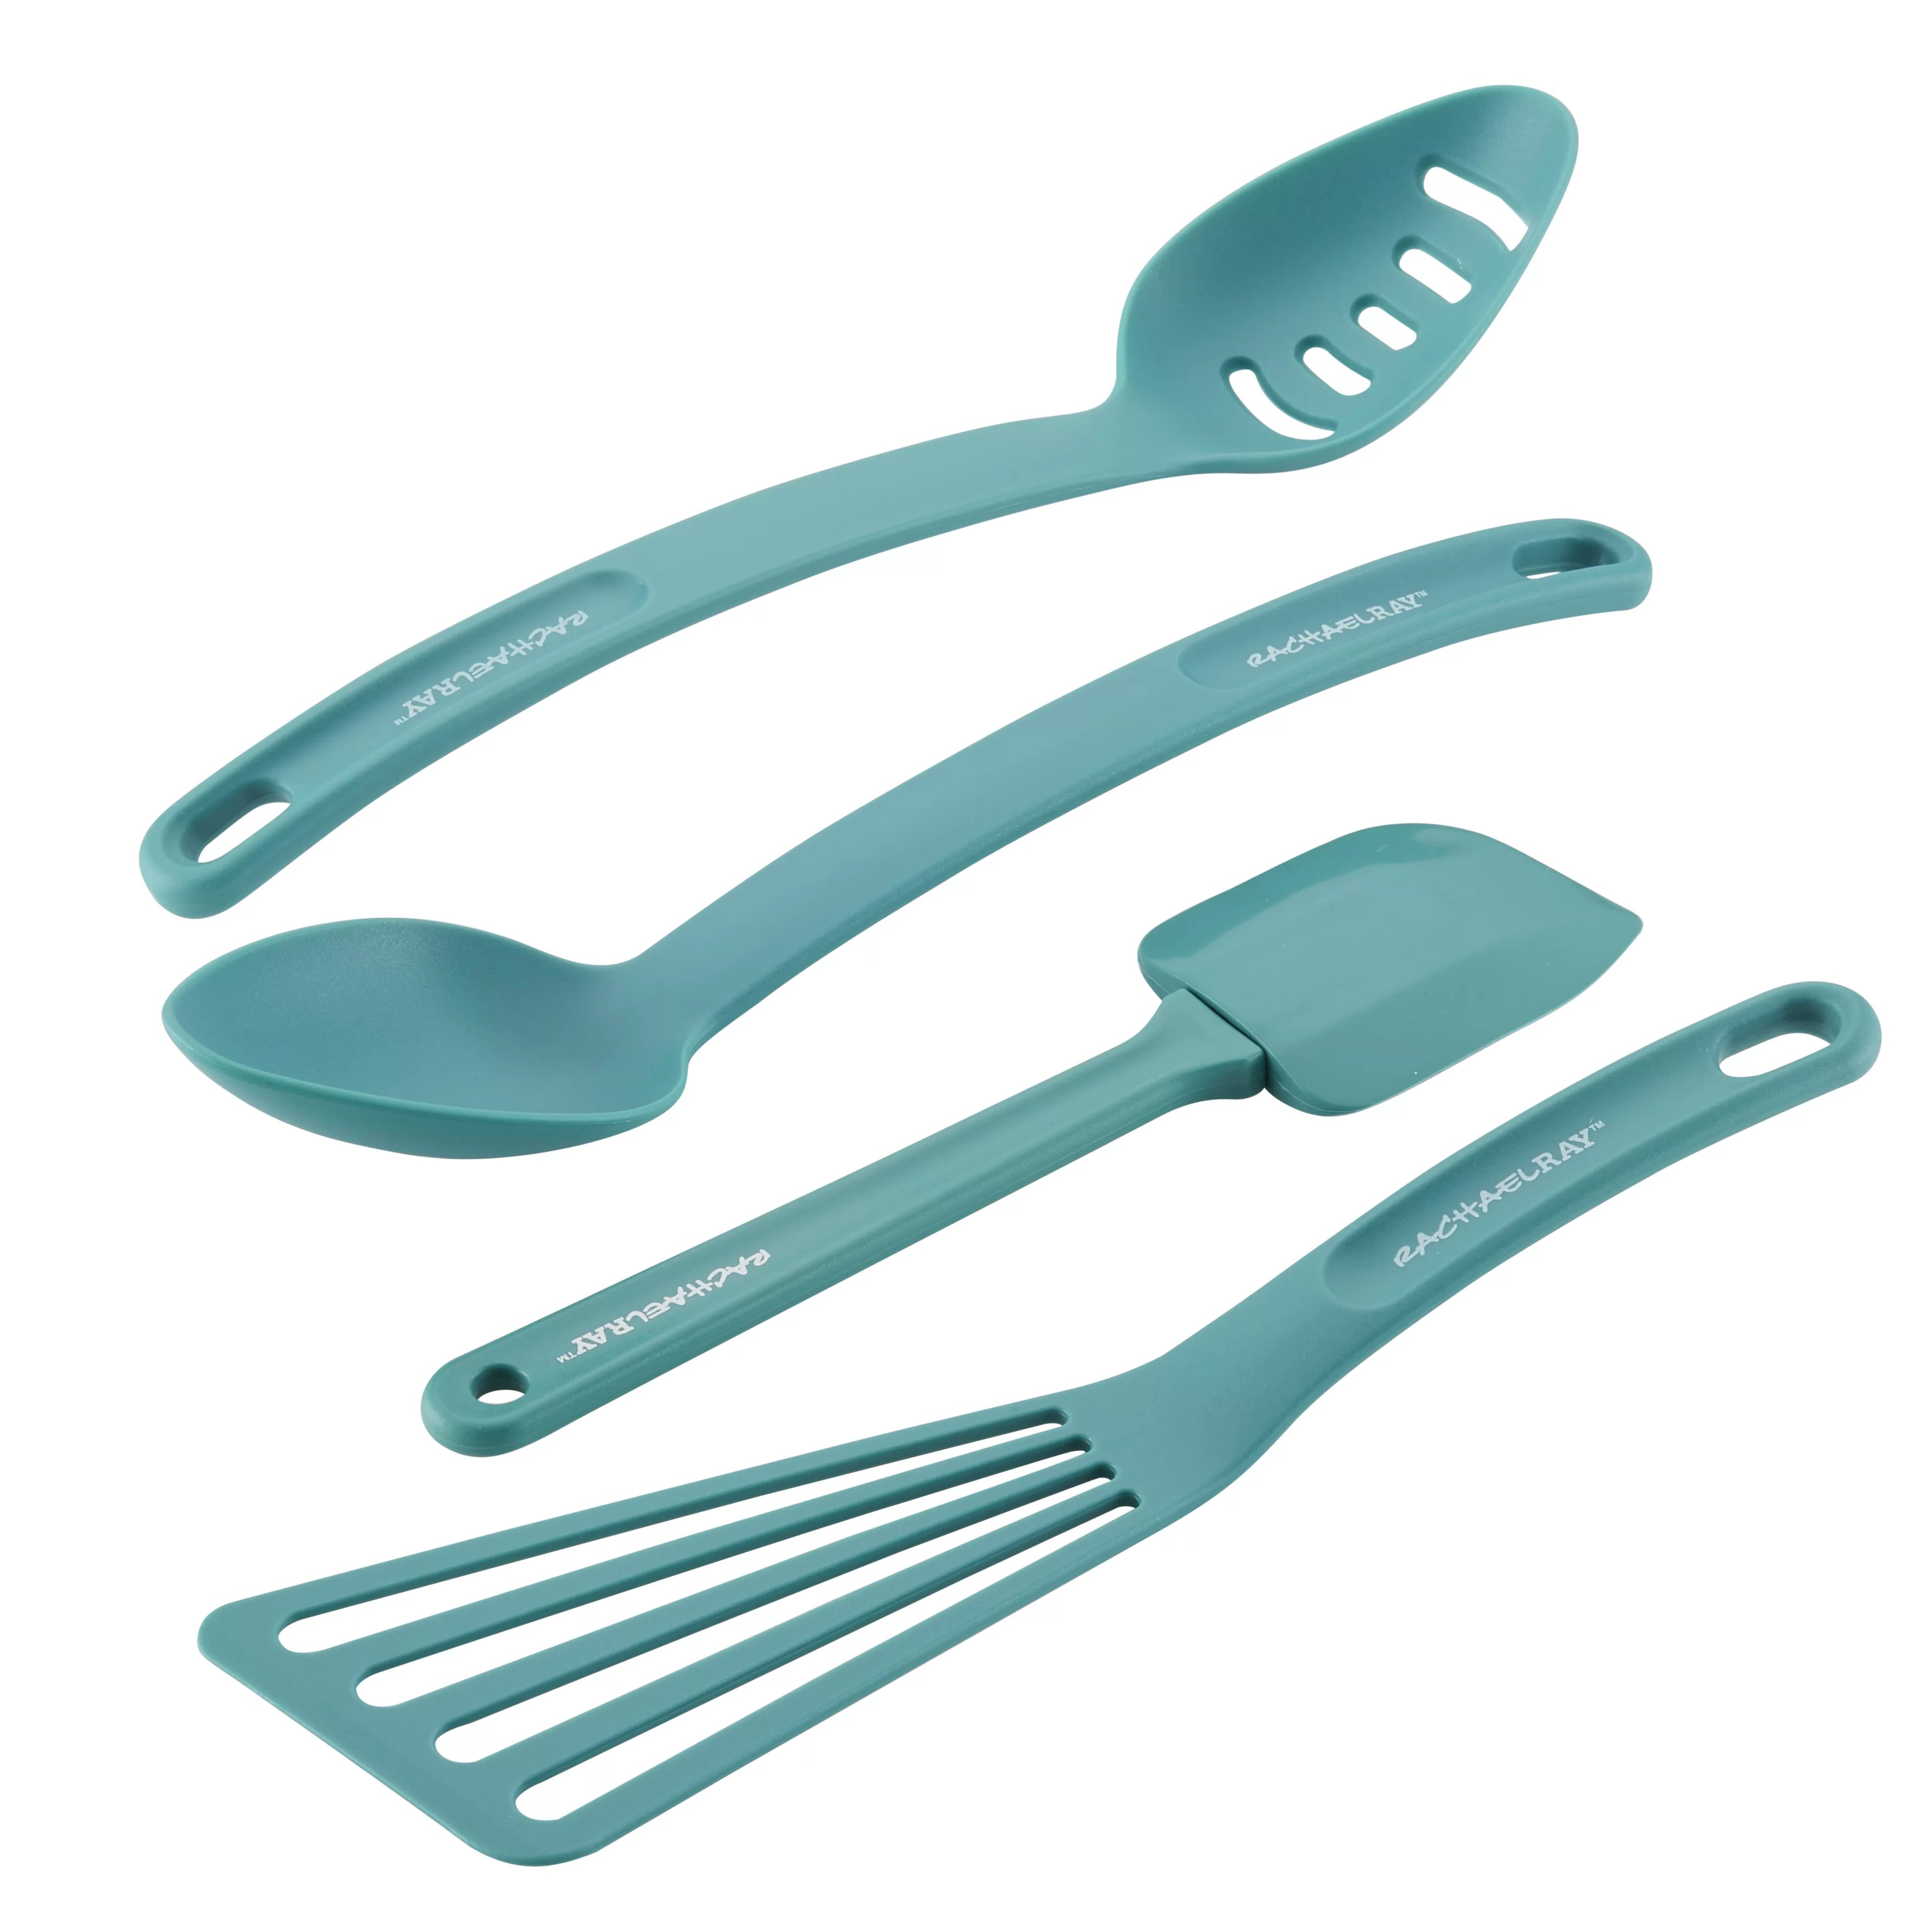 Cucina Kitchen Sign 4 Piece Cucina Nylon Nonstick Utensil Set